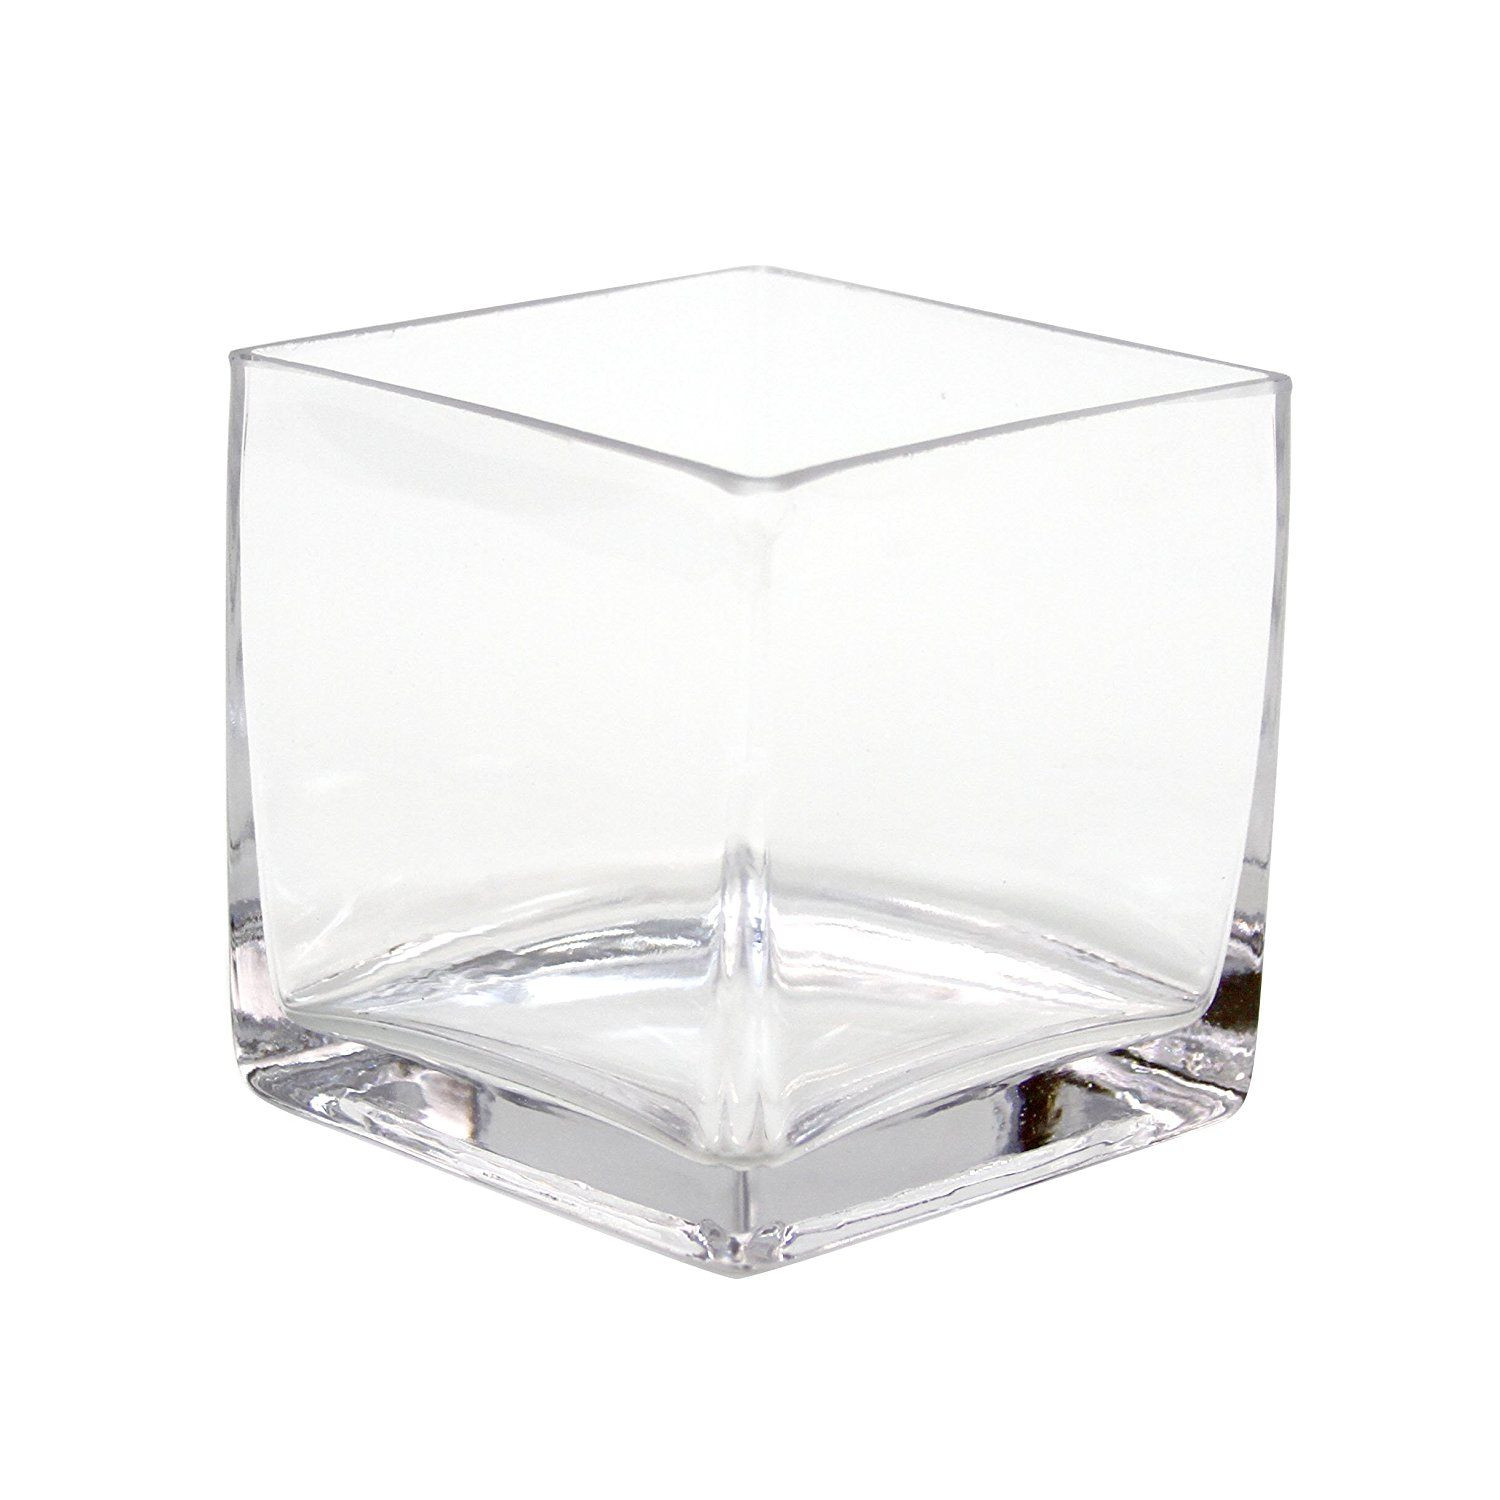 glass bottle vases wholesale of koyal wholesale 404343 12 pack cube square glass vases 4 by 4 by 4 intended for glass